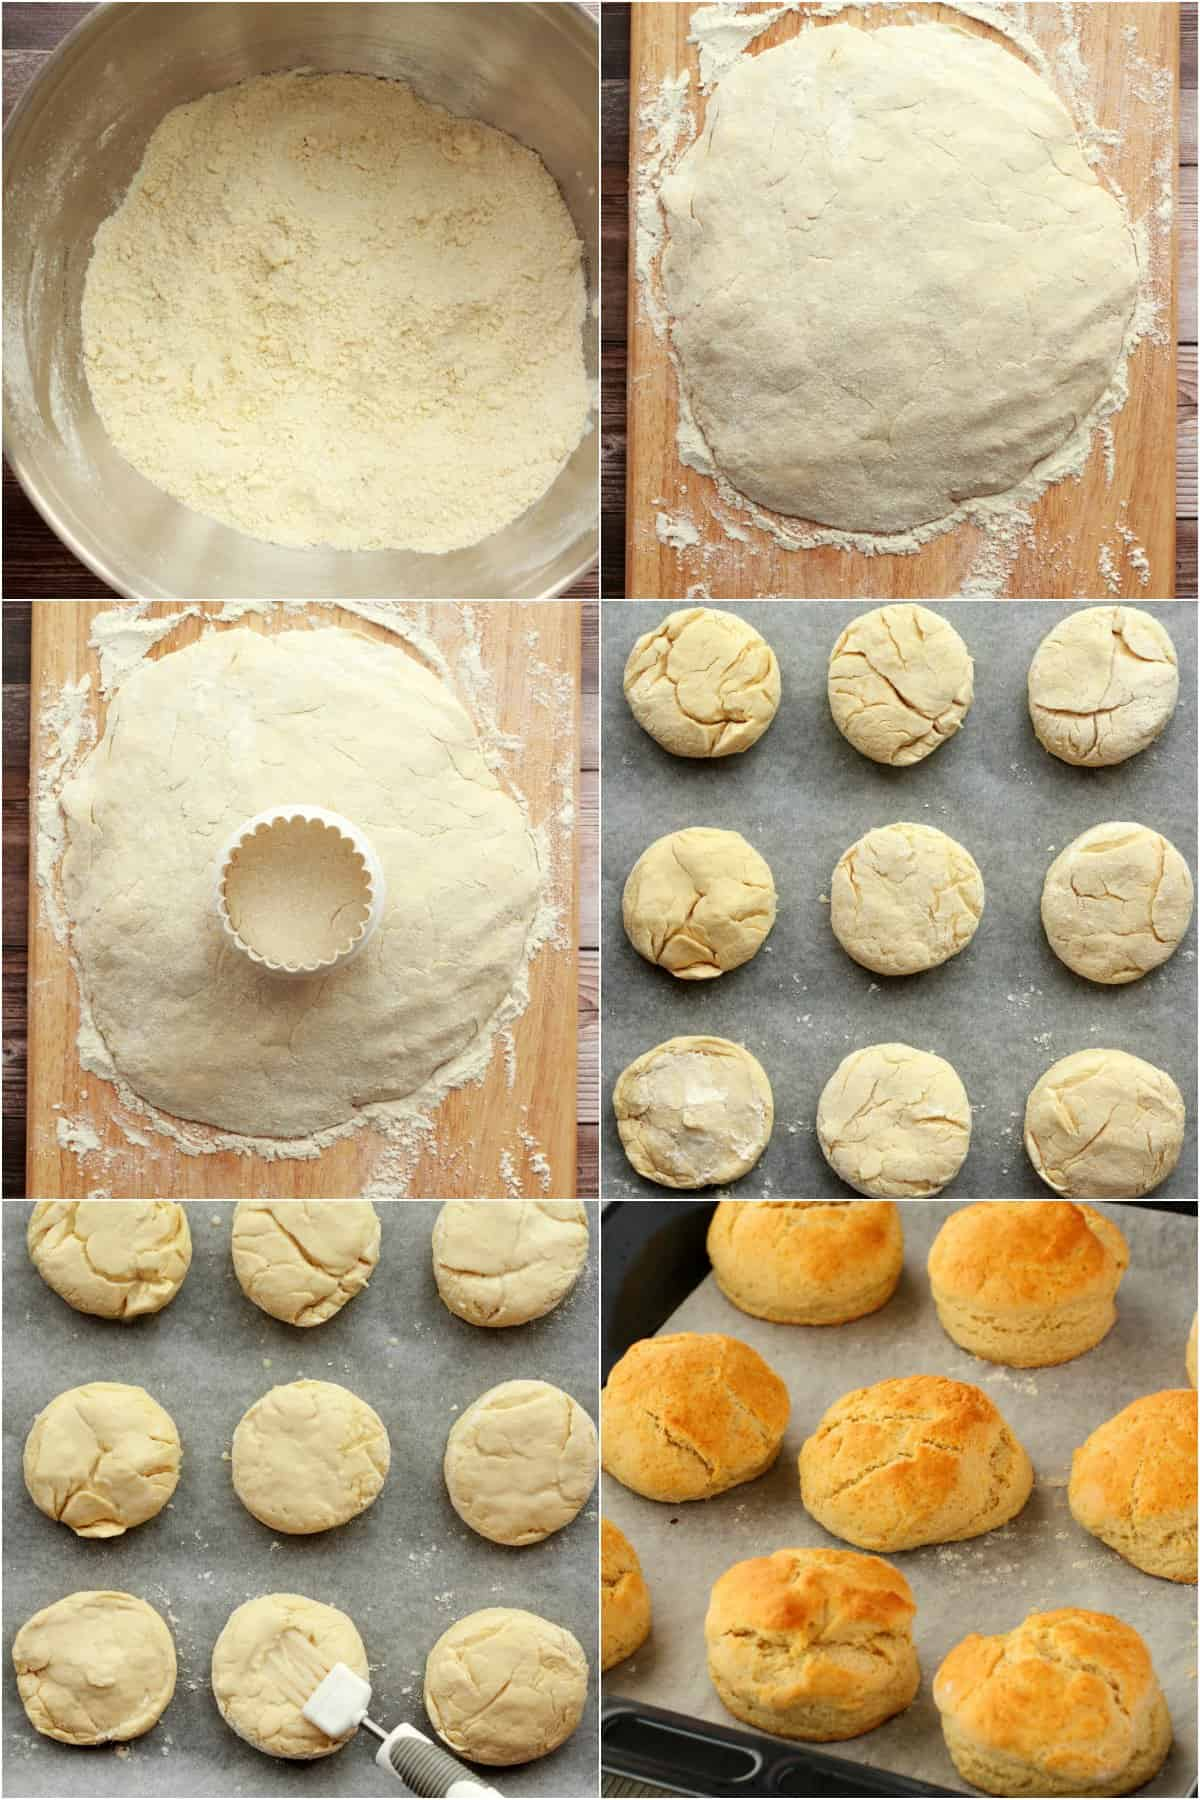 Step by step process photo collage of making vegan scones.